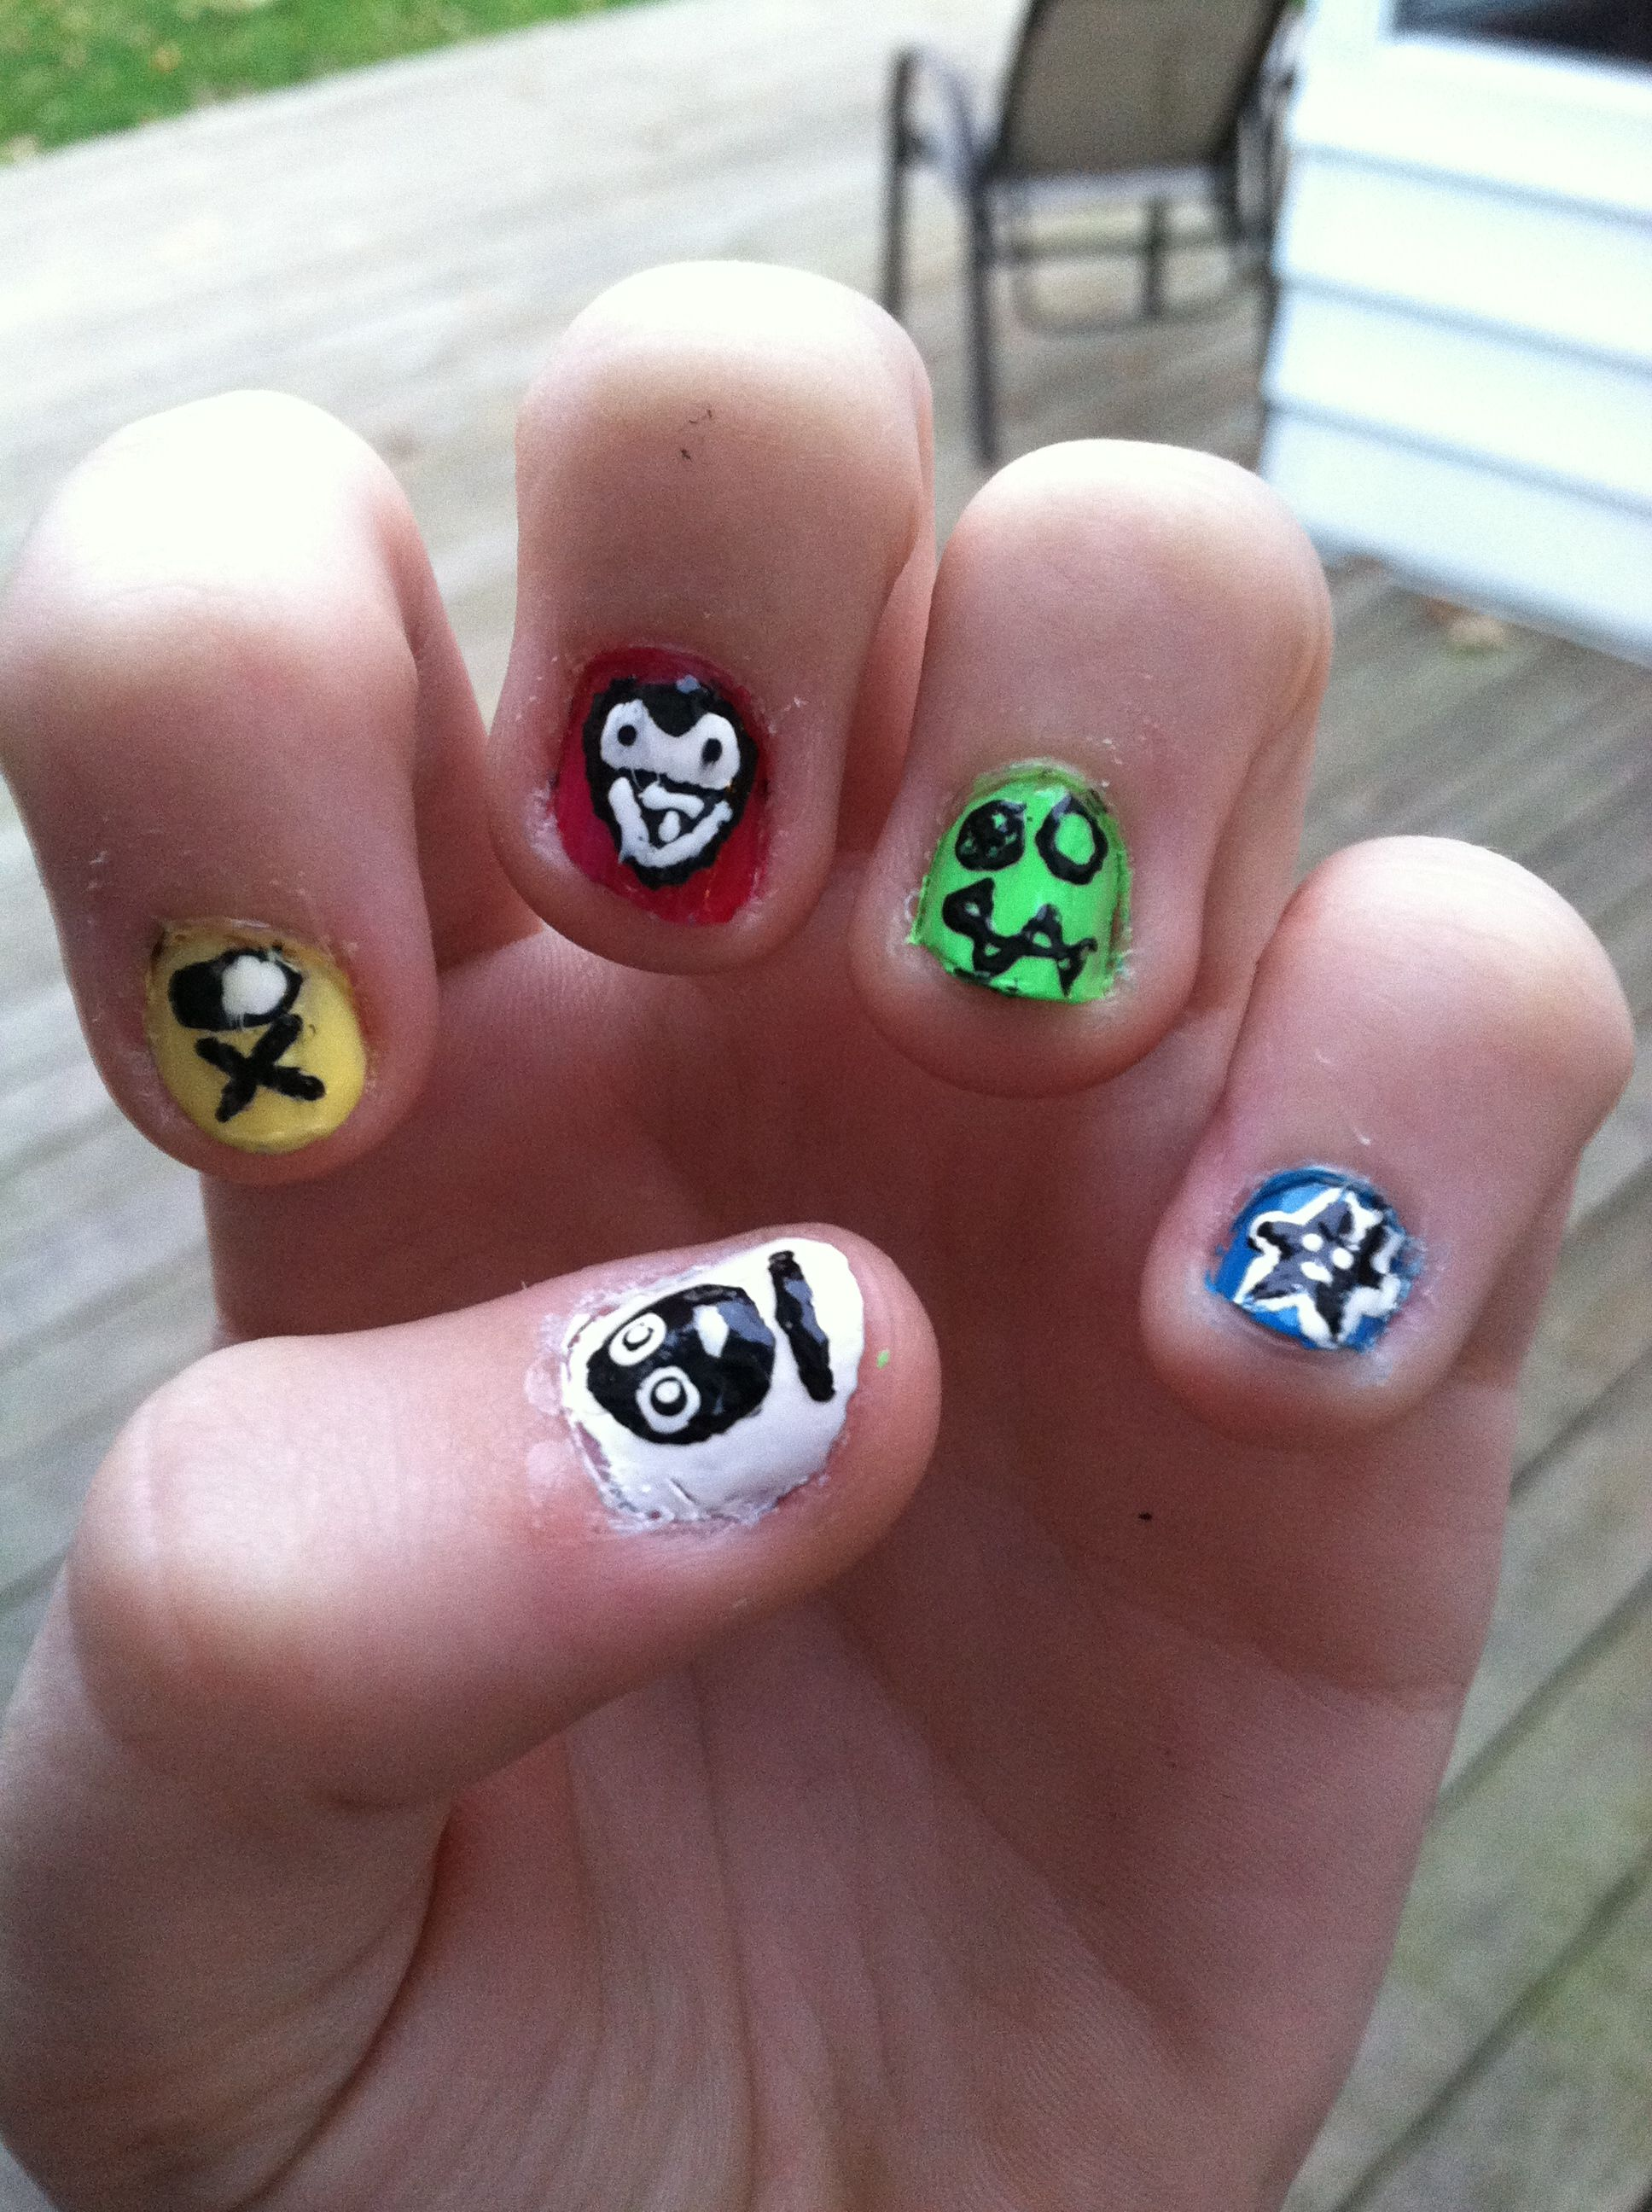 My killjoy nail art!